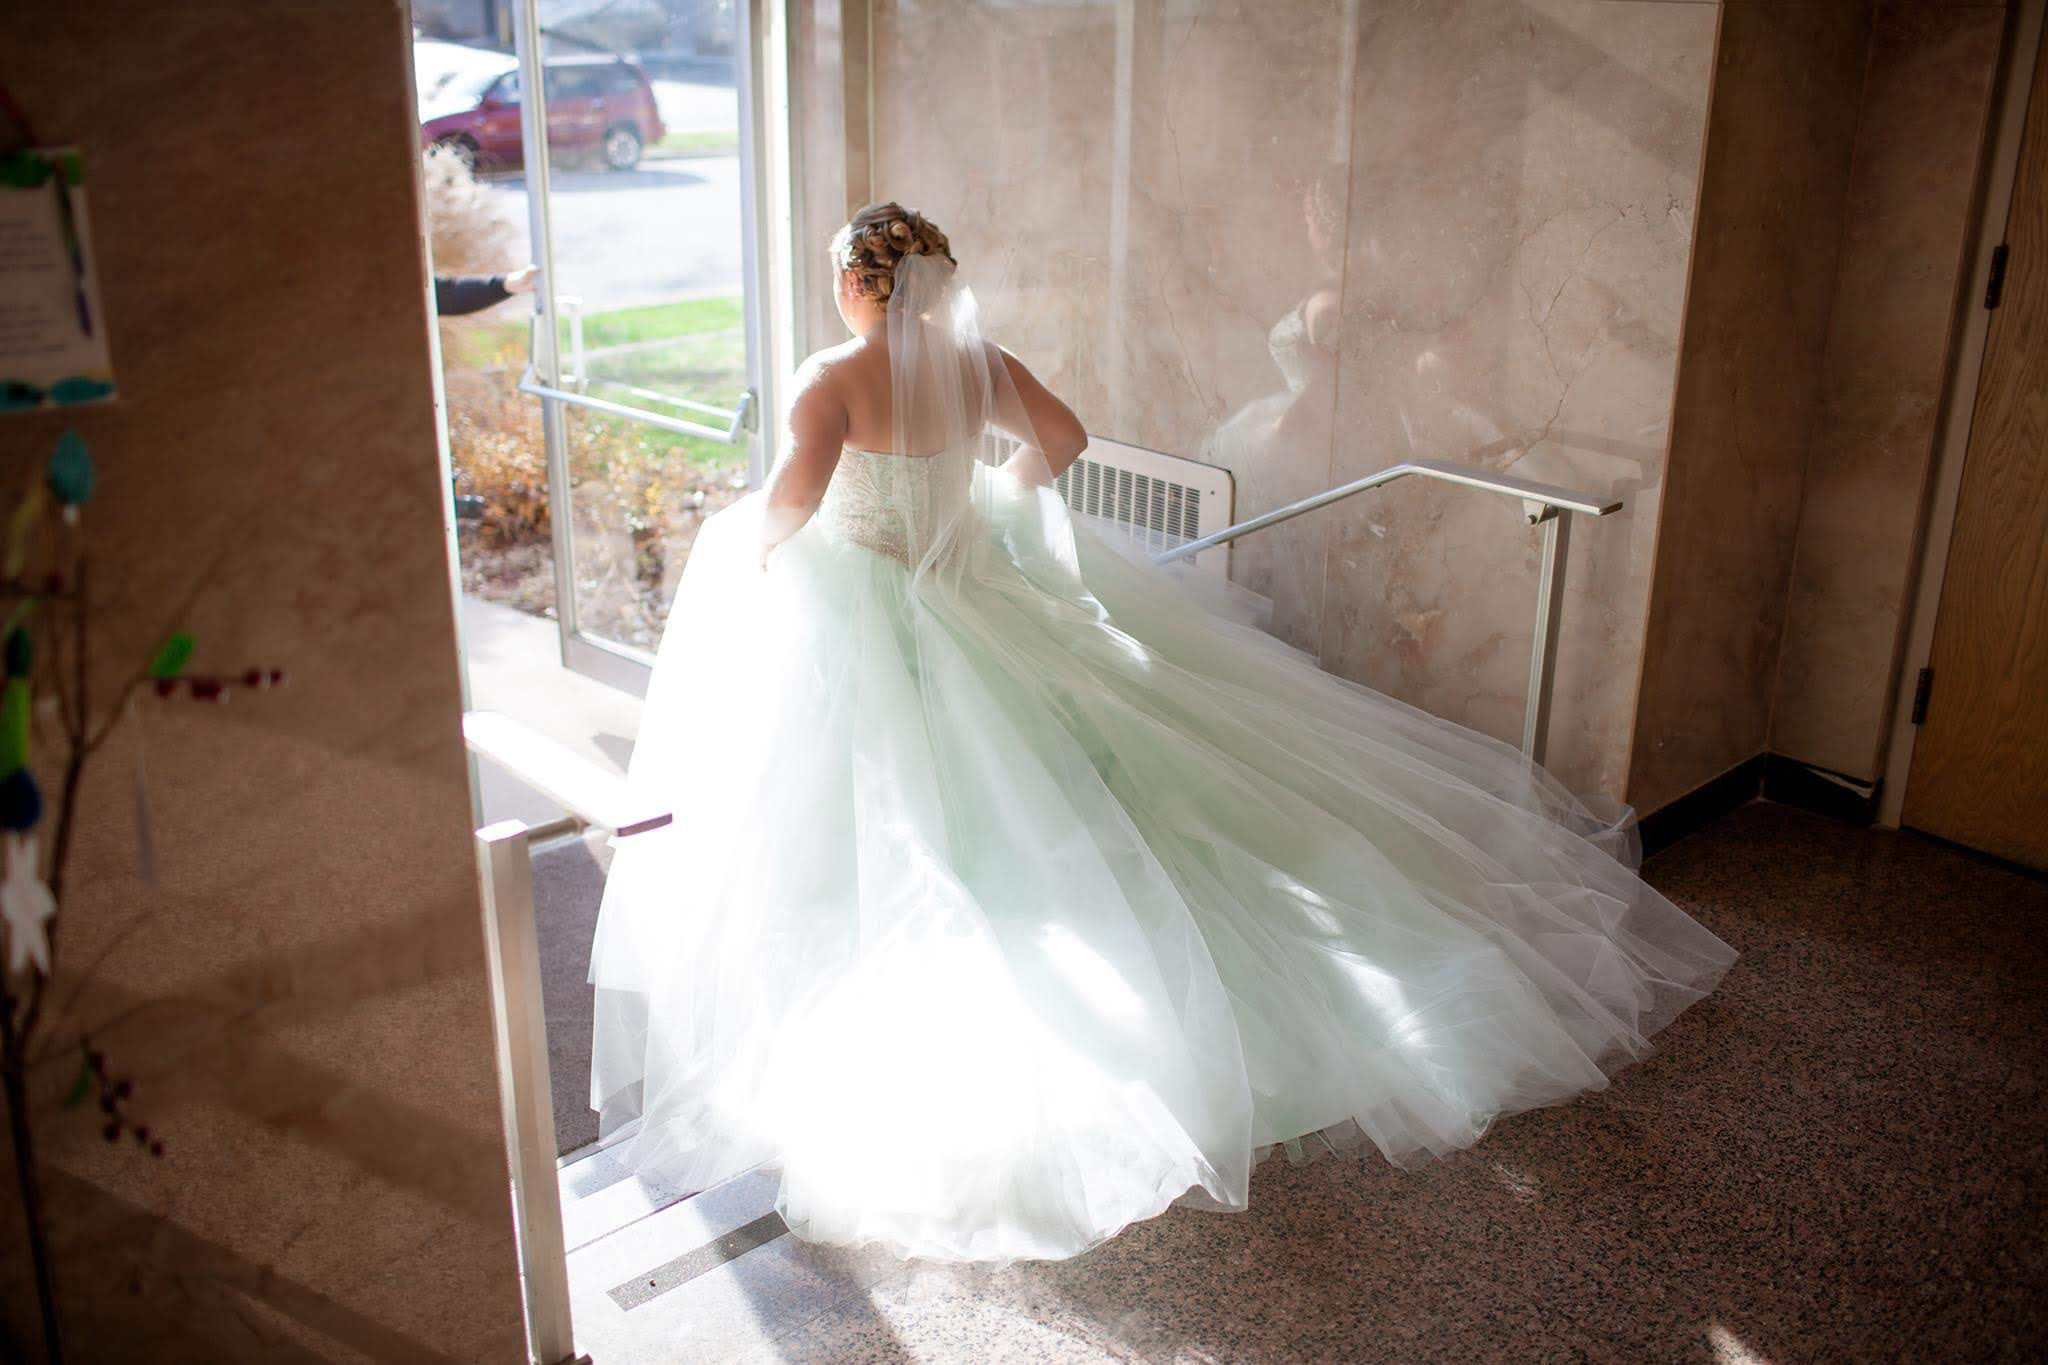 Photo by Leigh Photography    (Look closely! This bride's gown is a beautiful mint green hue.)